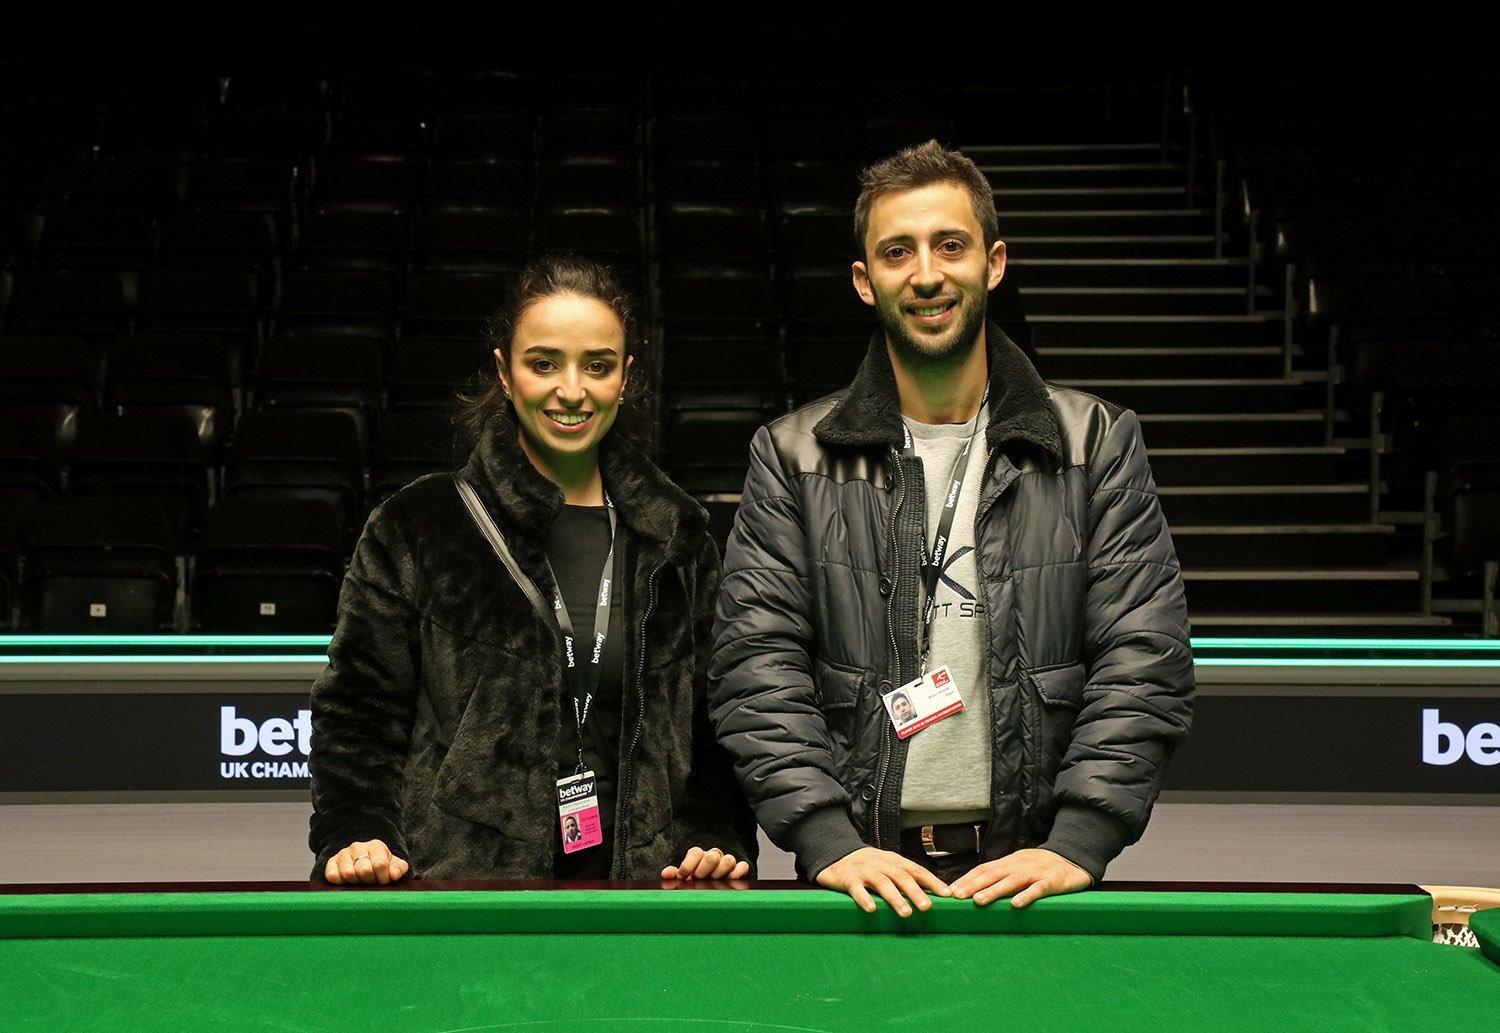 Africa's golden snooker couple on their ambition to develop snooker in Morocco